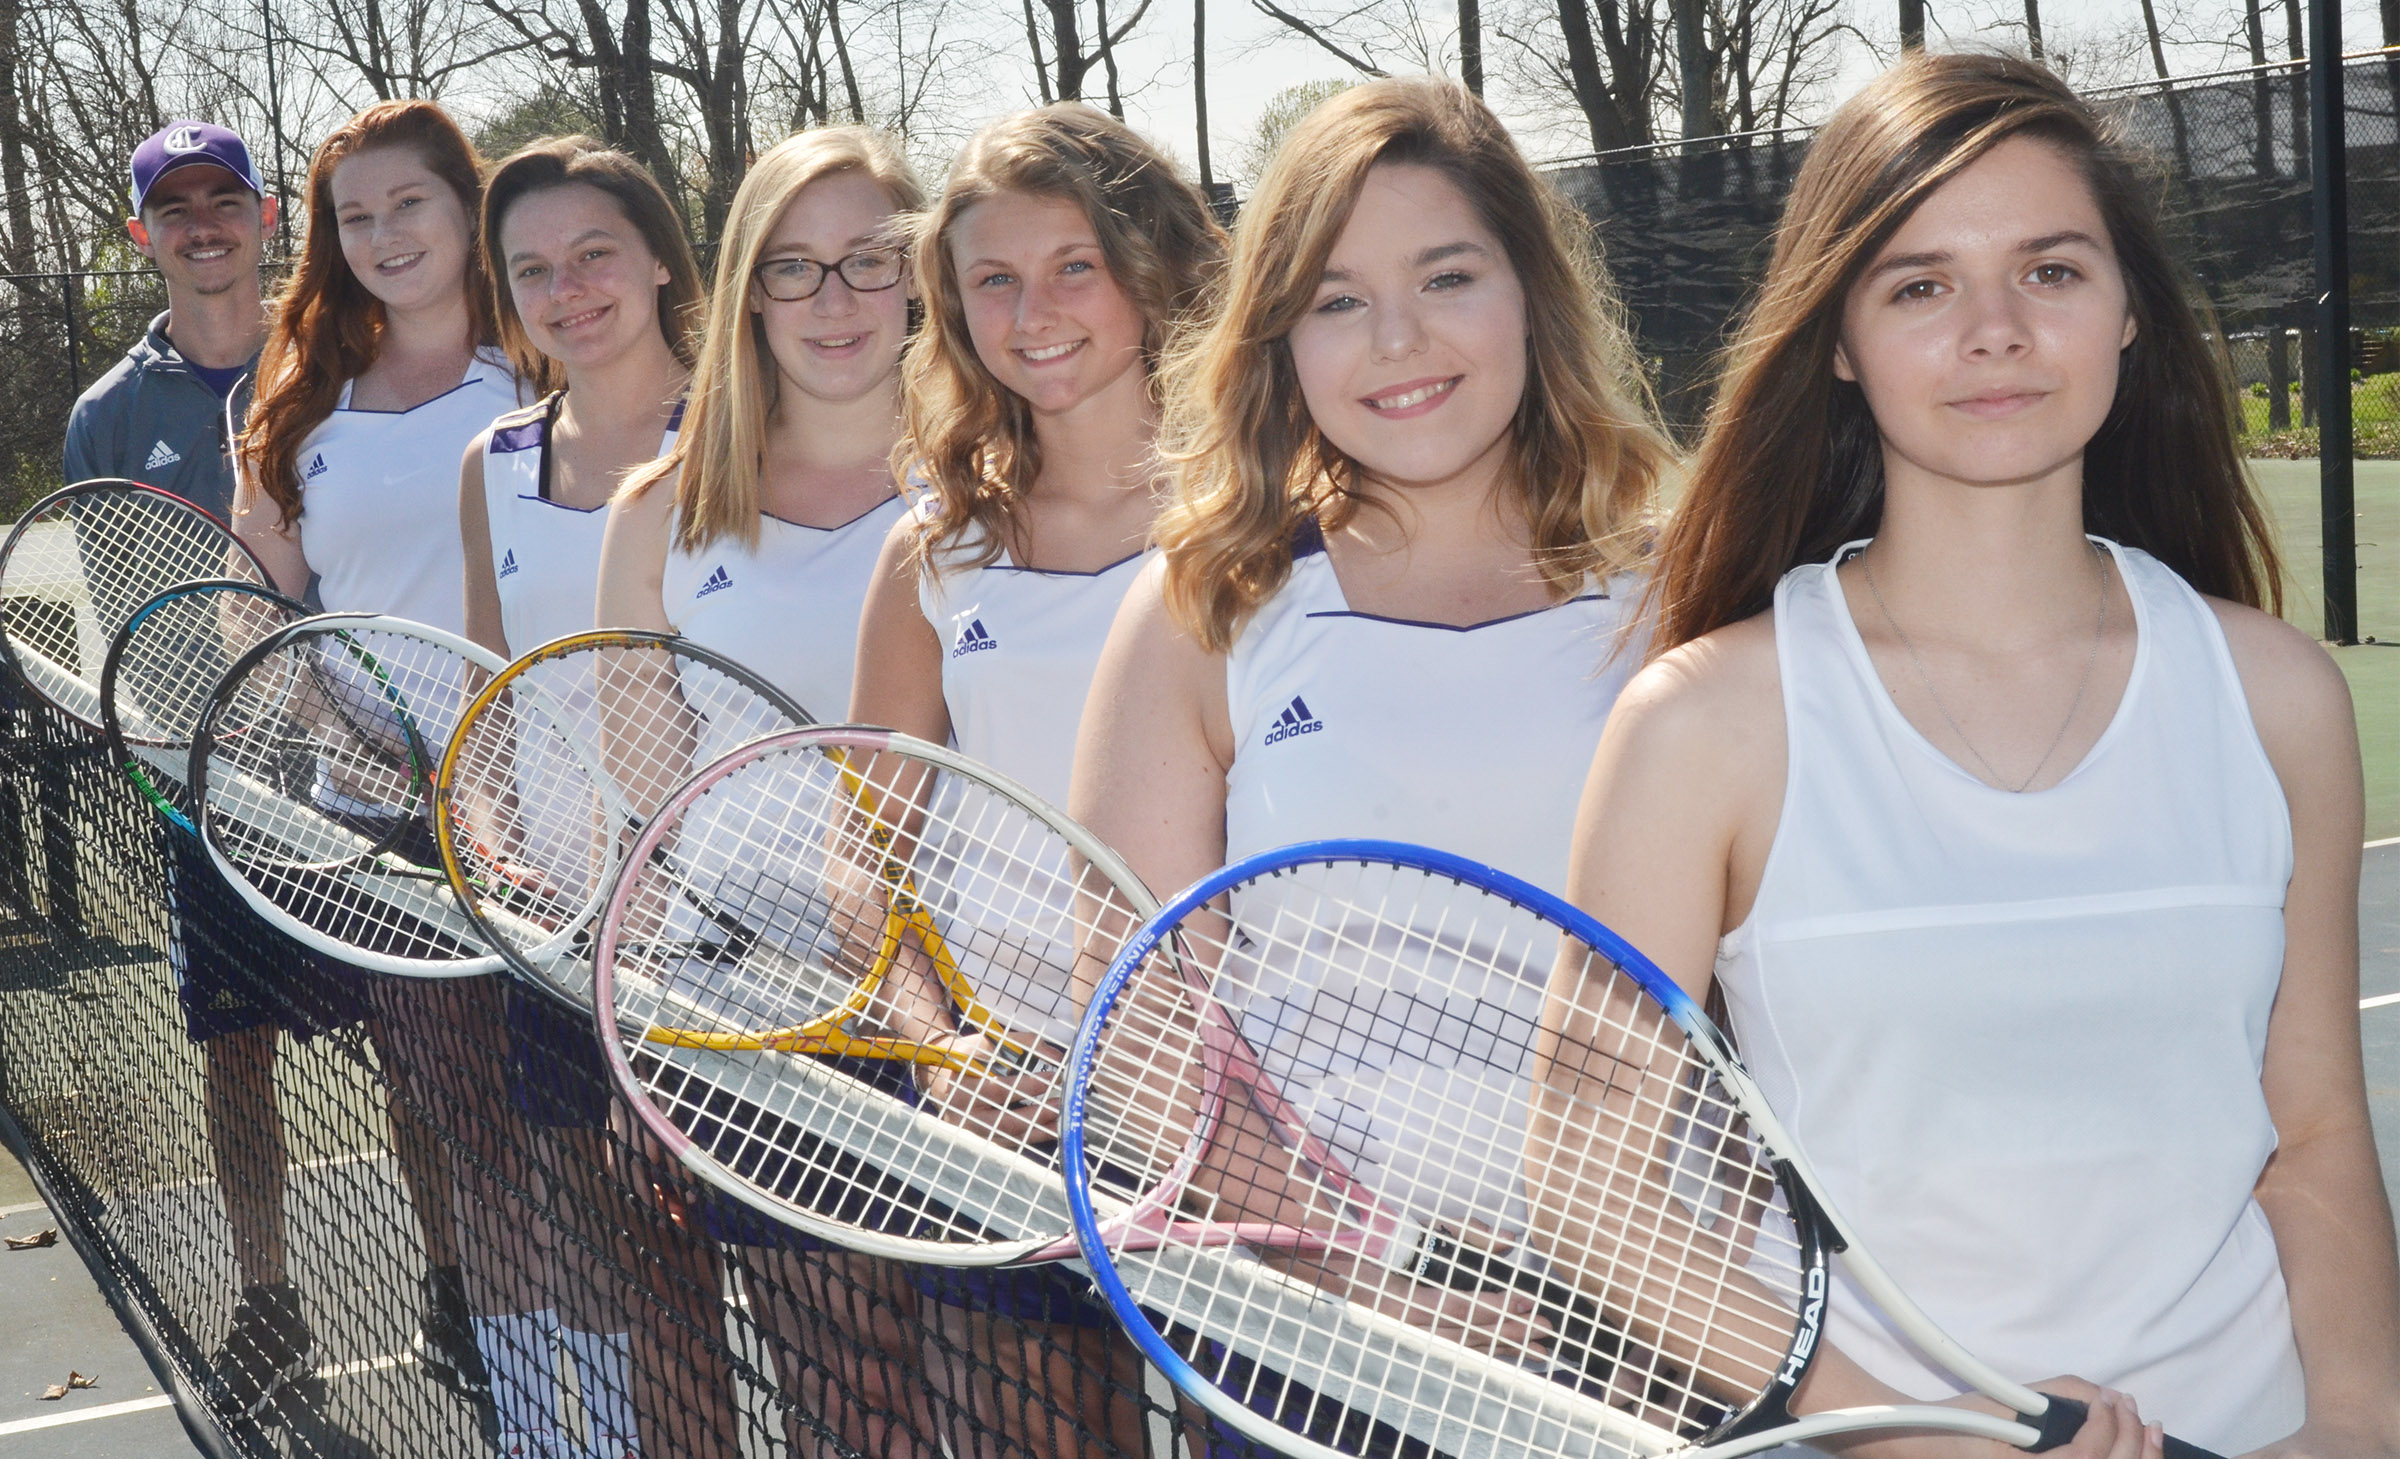 This year's CHS girls' tennis team includes, from left, coach Bradley Harris, seniors Mallory Haley and Kyrsten Hill, freshmen Samantha Johnson and Victoria Cox, junior Sara Farmer and senior Shauna Jones.